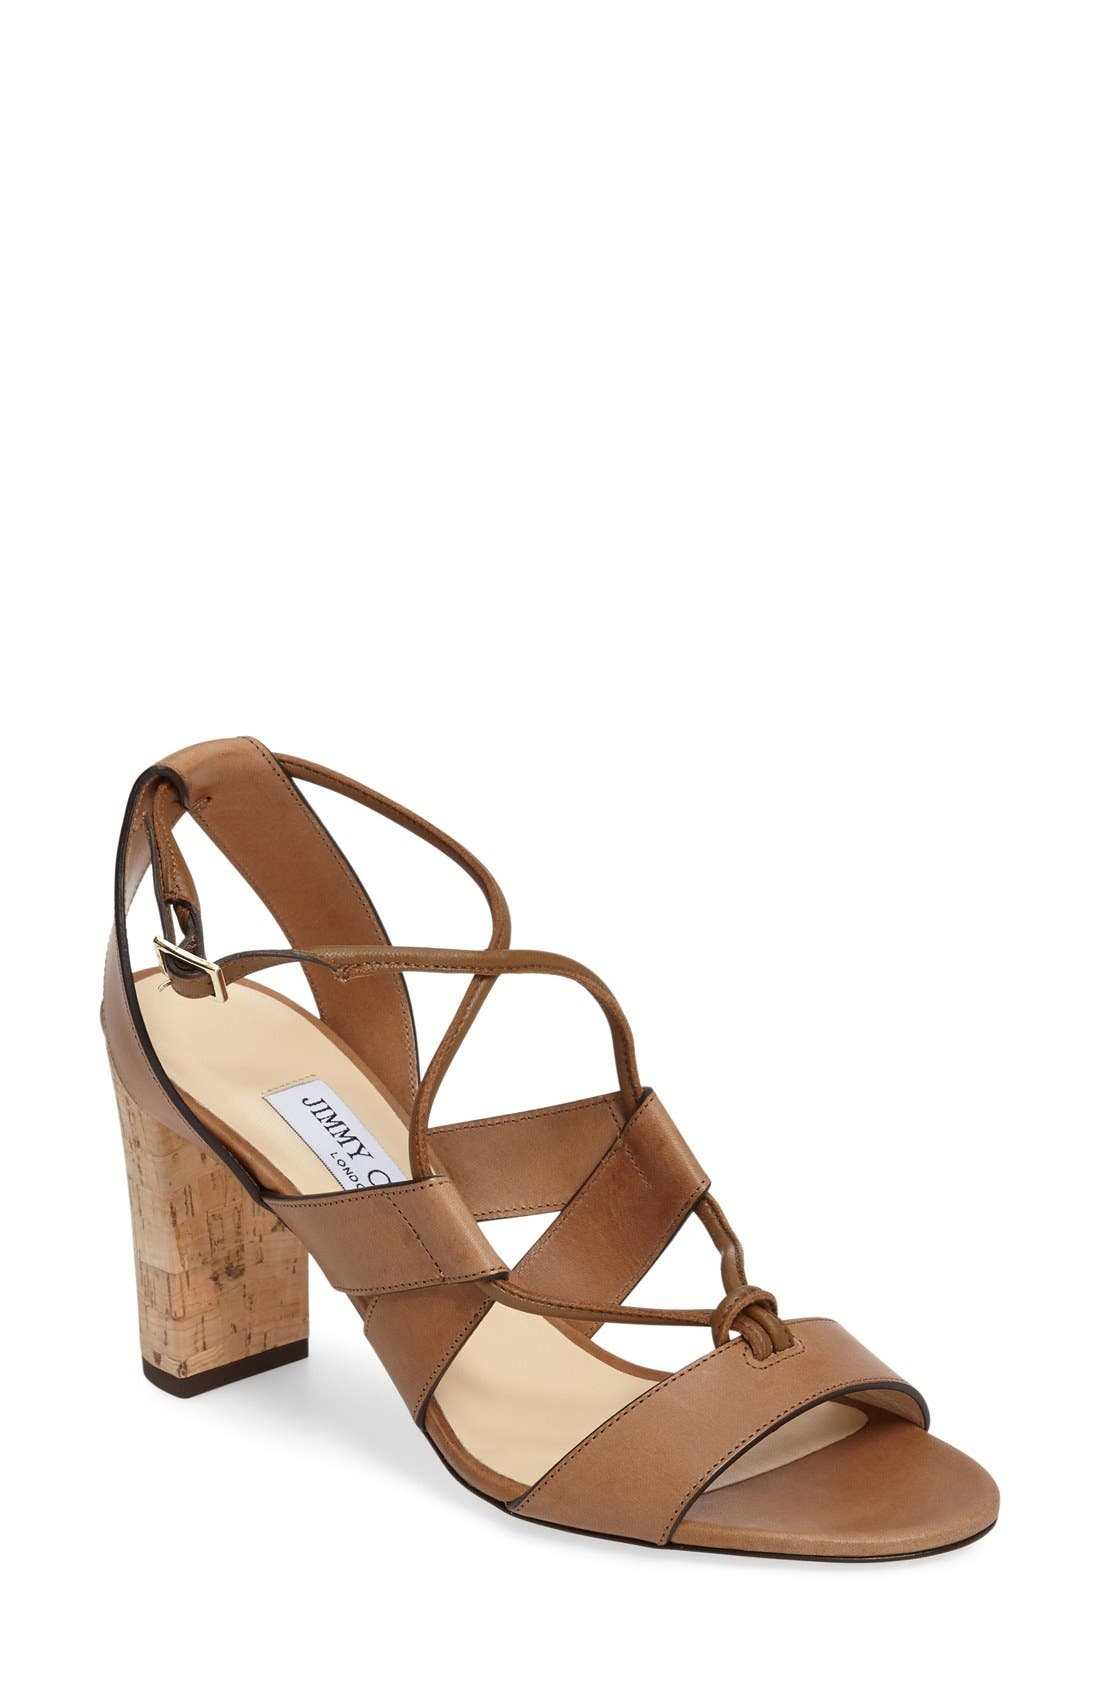 JIMMY CHOO Margo Ghillie Laced Sandal